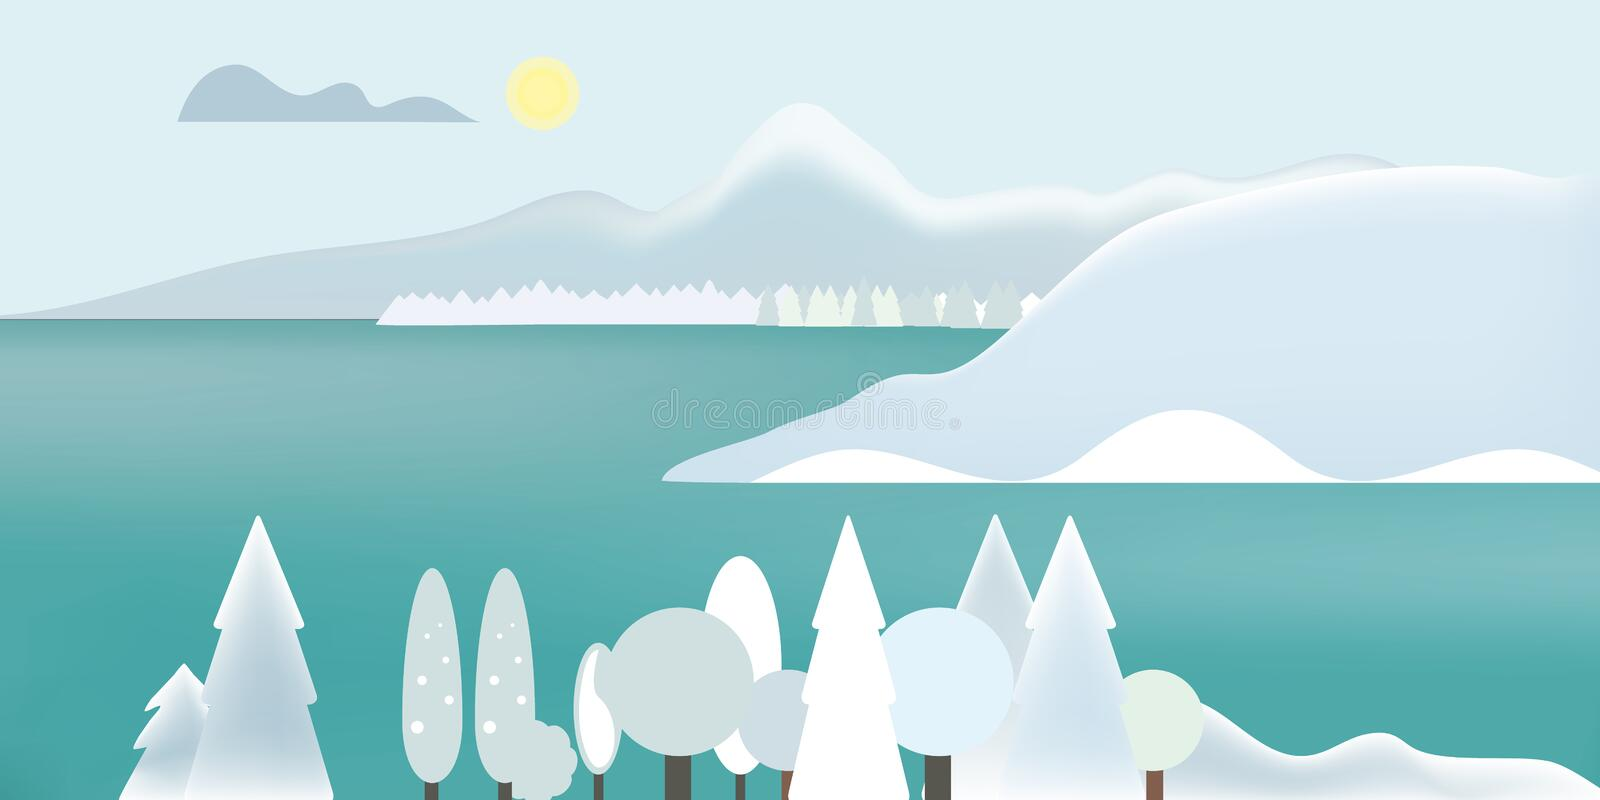 Flat design illustration of winter mountain landscape with lake, snow on top of mountains and snowy trees, under gray sky with cl royalty free illustration